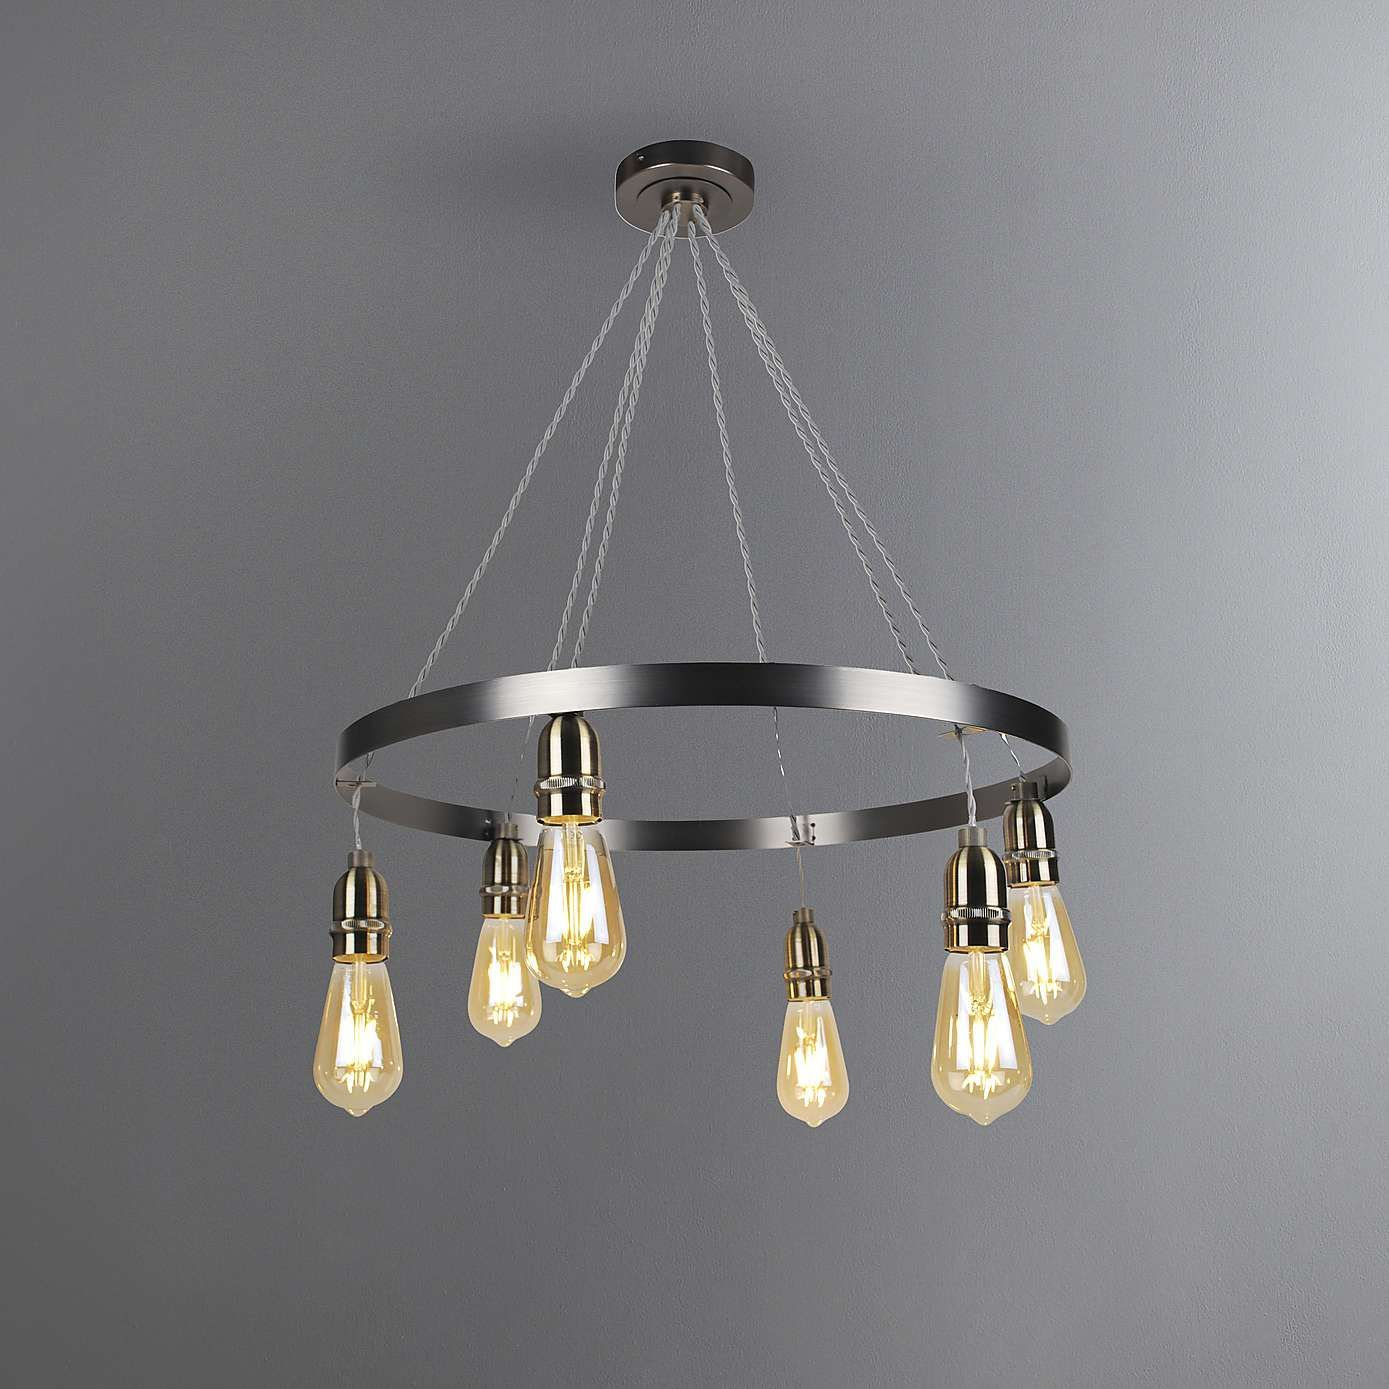 Marsden Industrial 6 Light Hoop Antique Brass Ceiling Fitting Light Fittings Living Room Kitchen Light Fittings Ceiling Lights